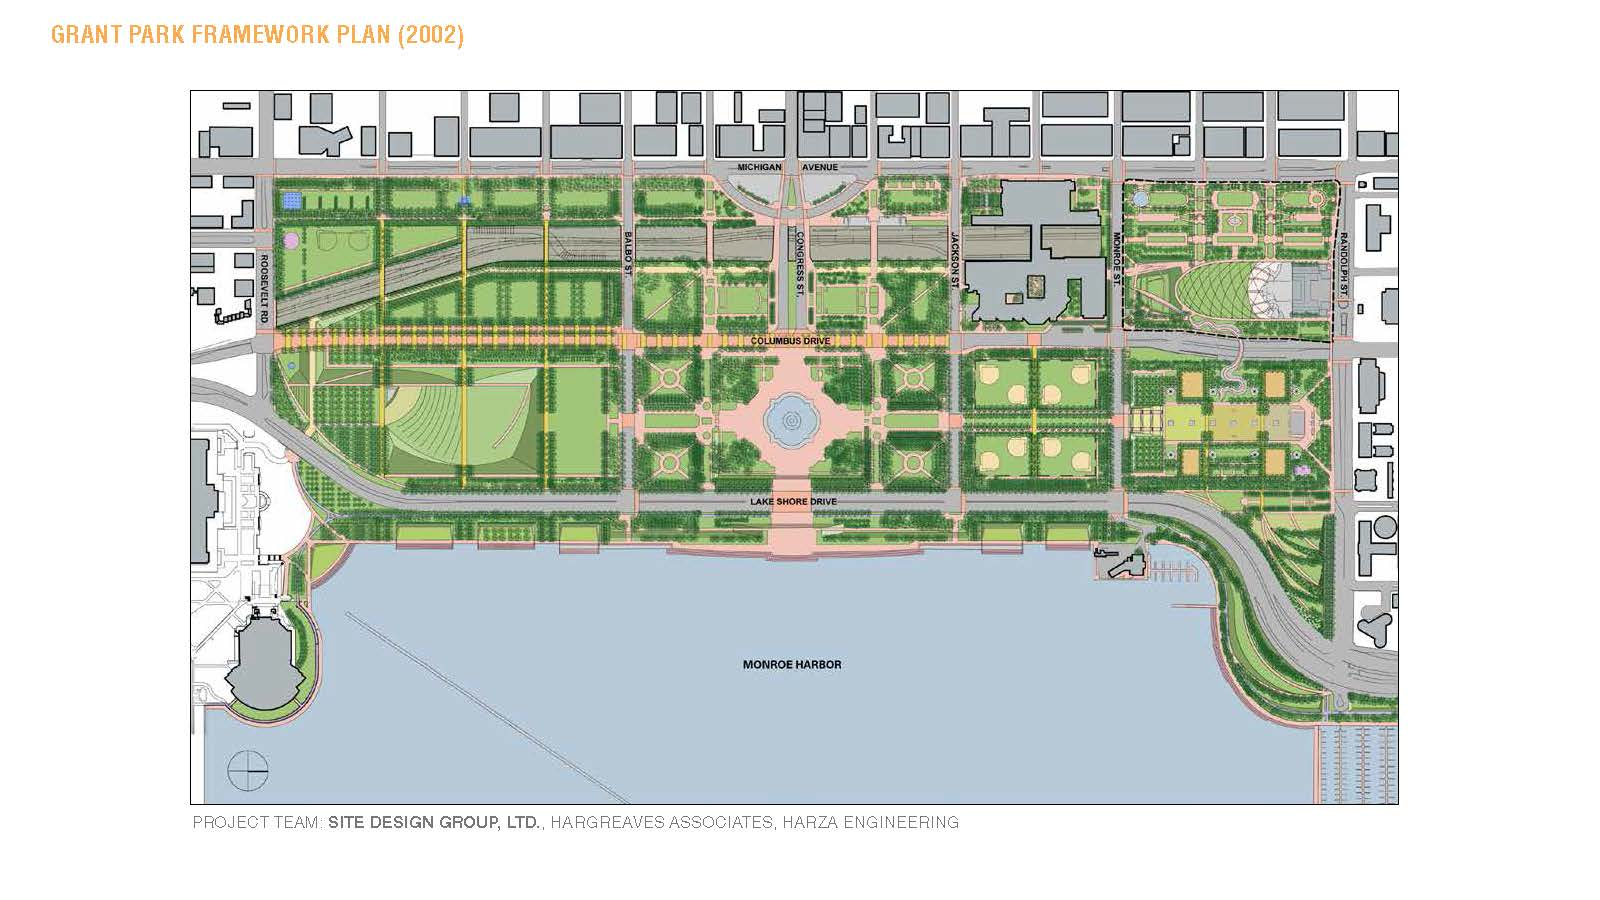 7741_20160713_South Grant Park Charrette Presentation_low res_Page_29.jpg